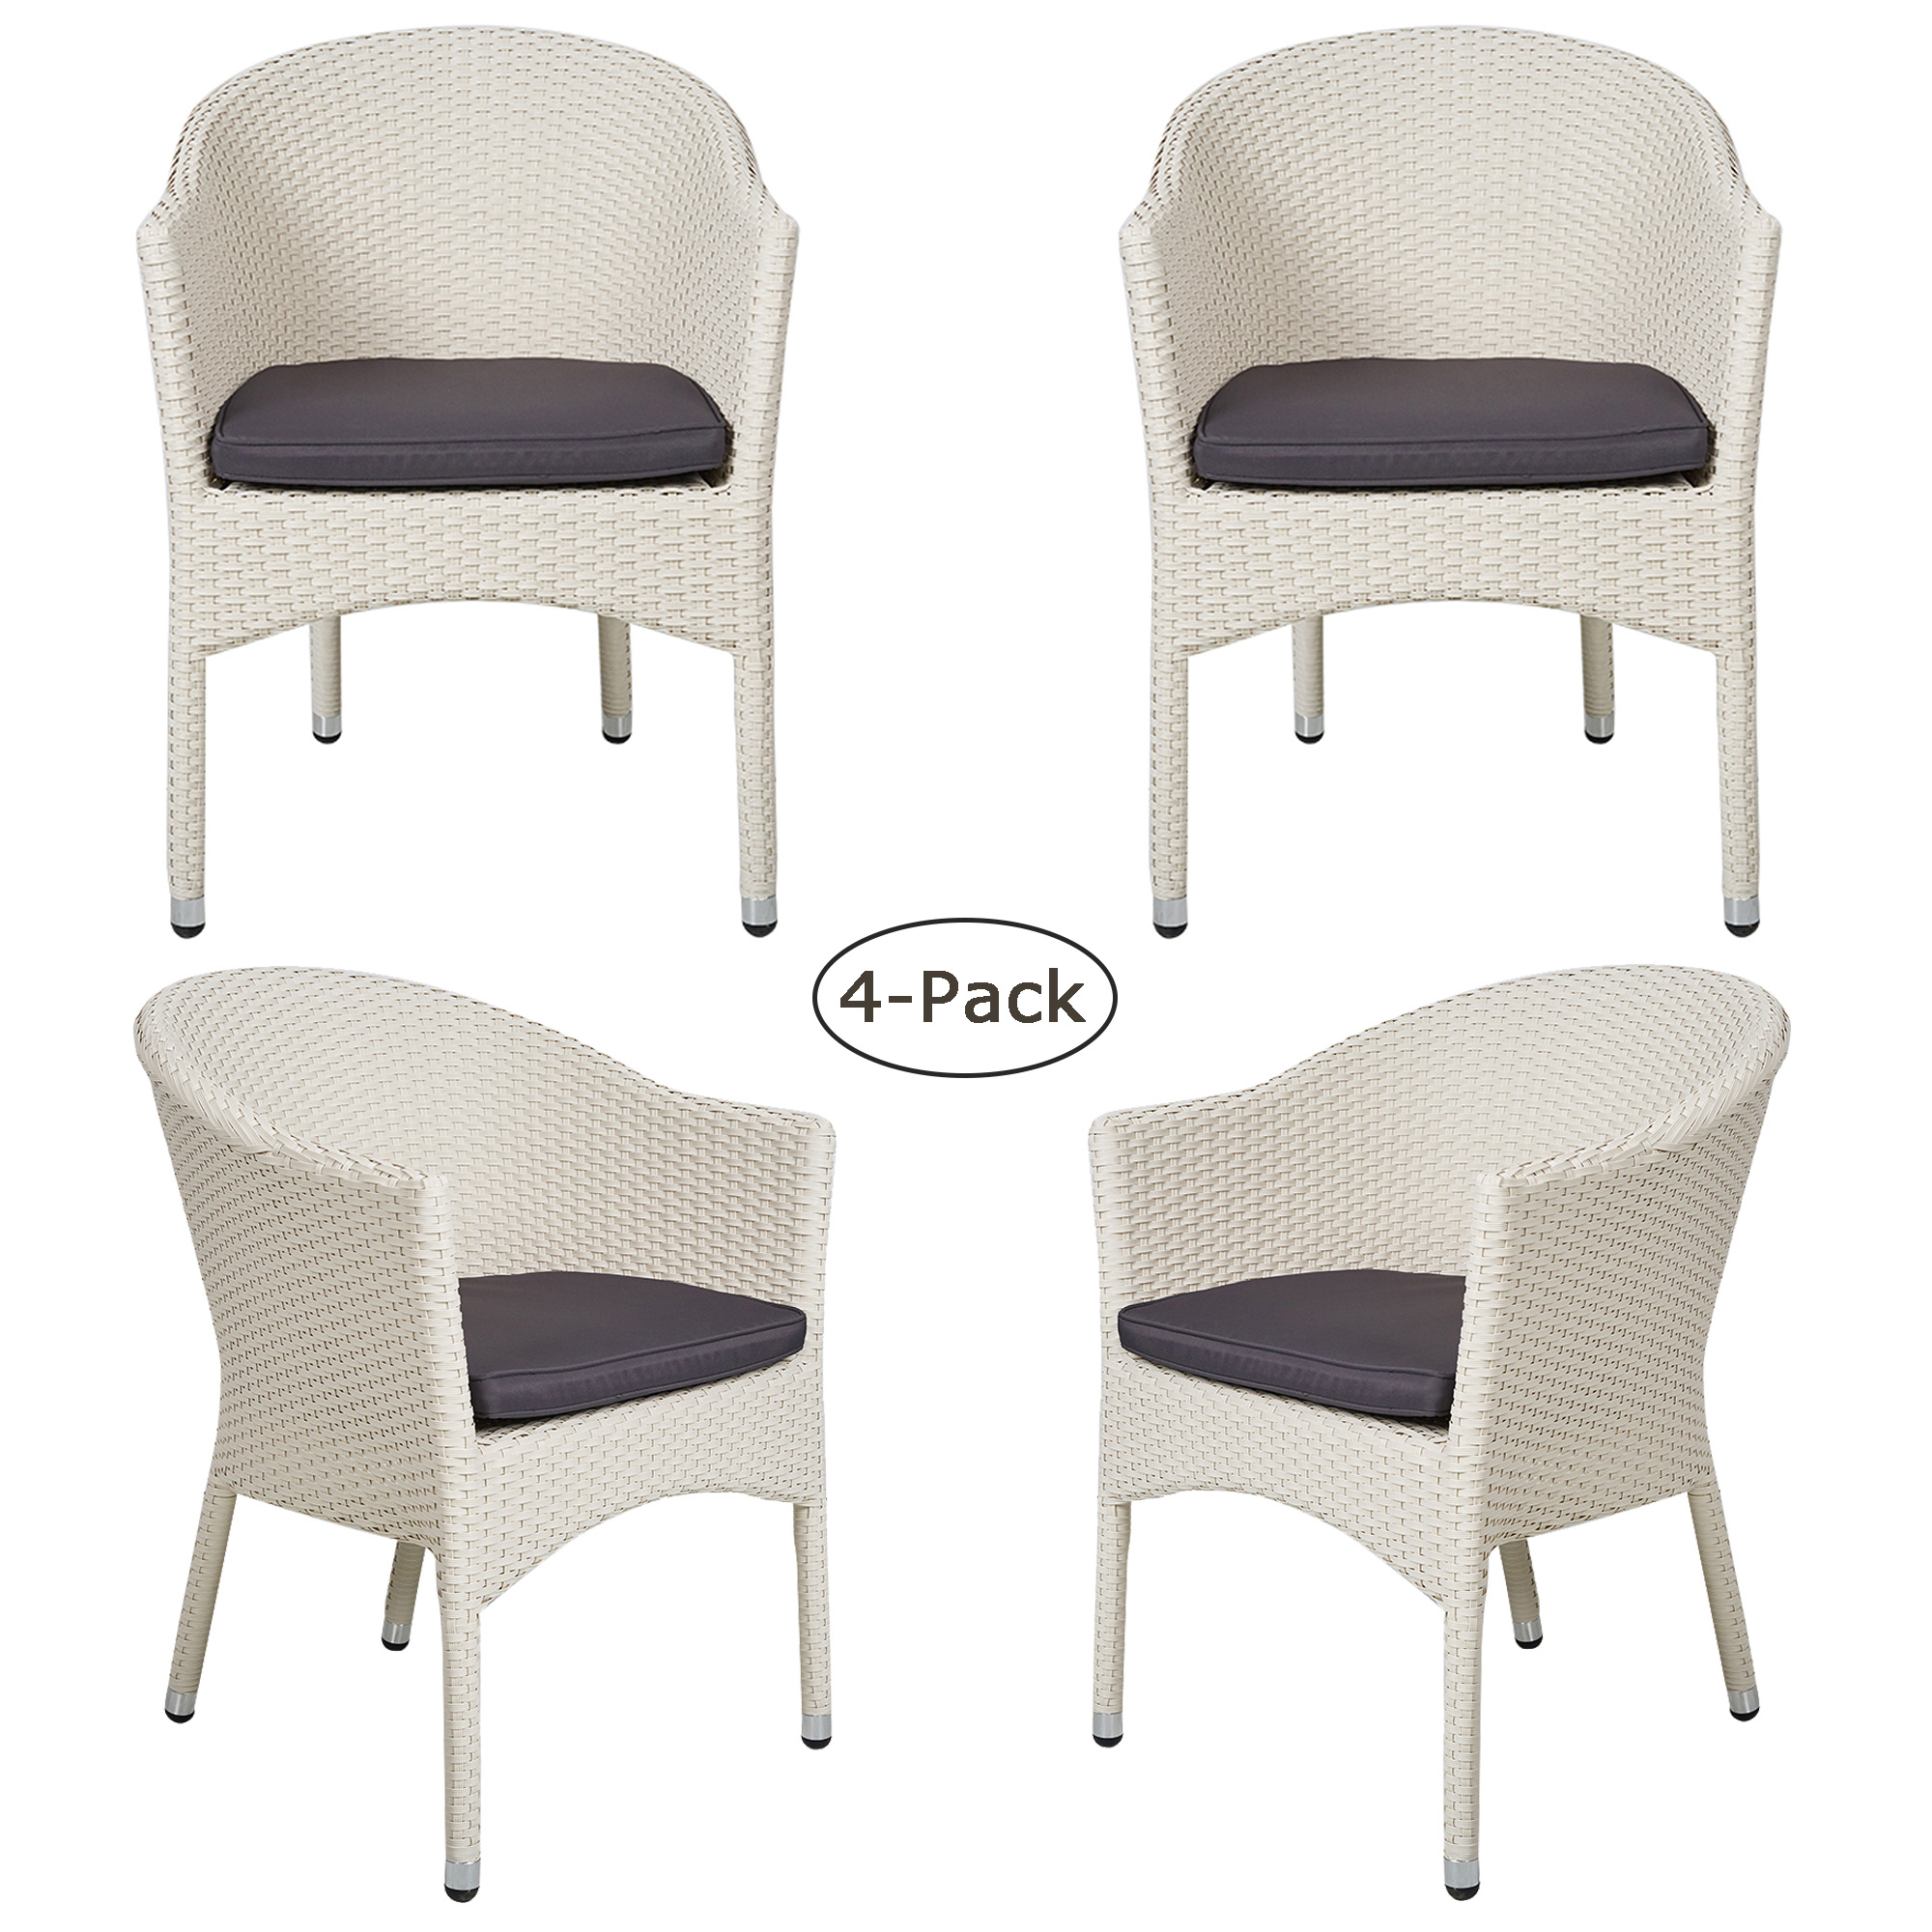 Rattan Chairs Karmas Product 4 Pack Patio Rattan Chairs Home Furniture Wicker Chair With Cushion All Weather Outdoor Indoor Use Garden Balcony Backyard White